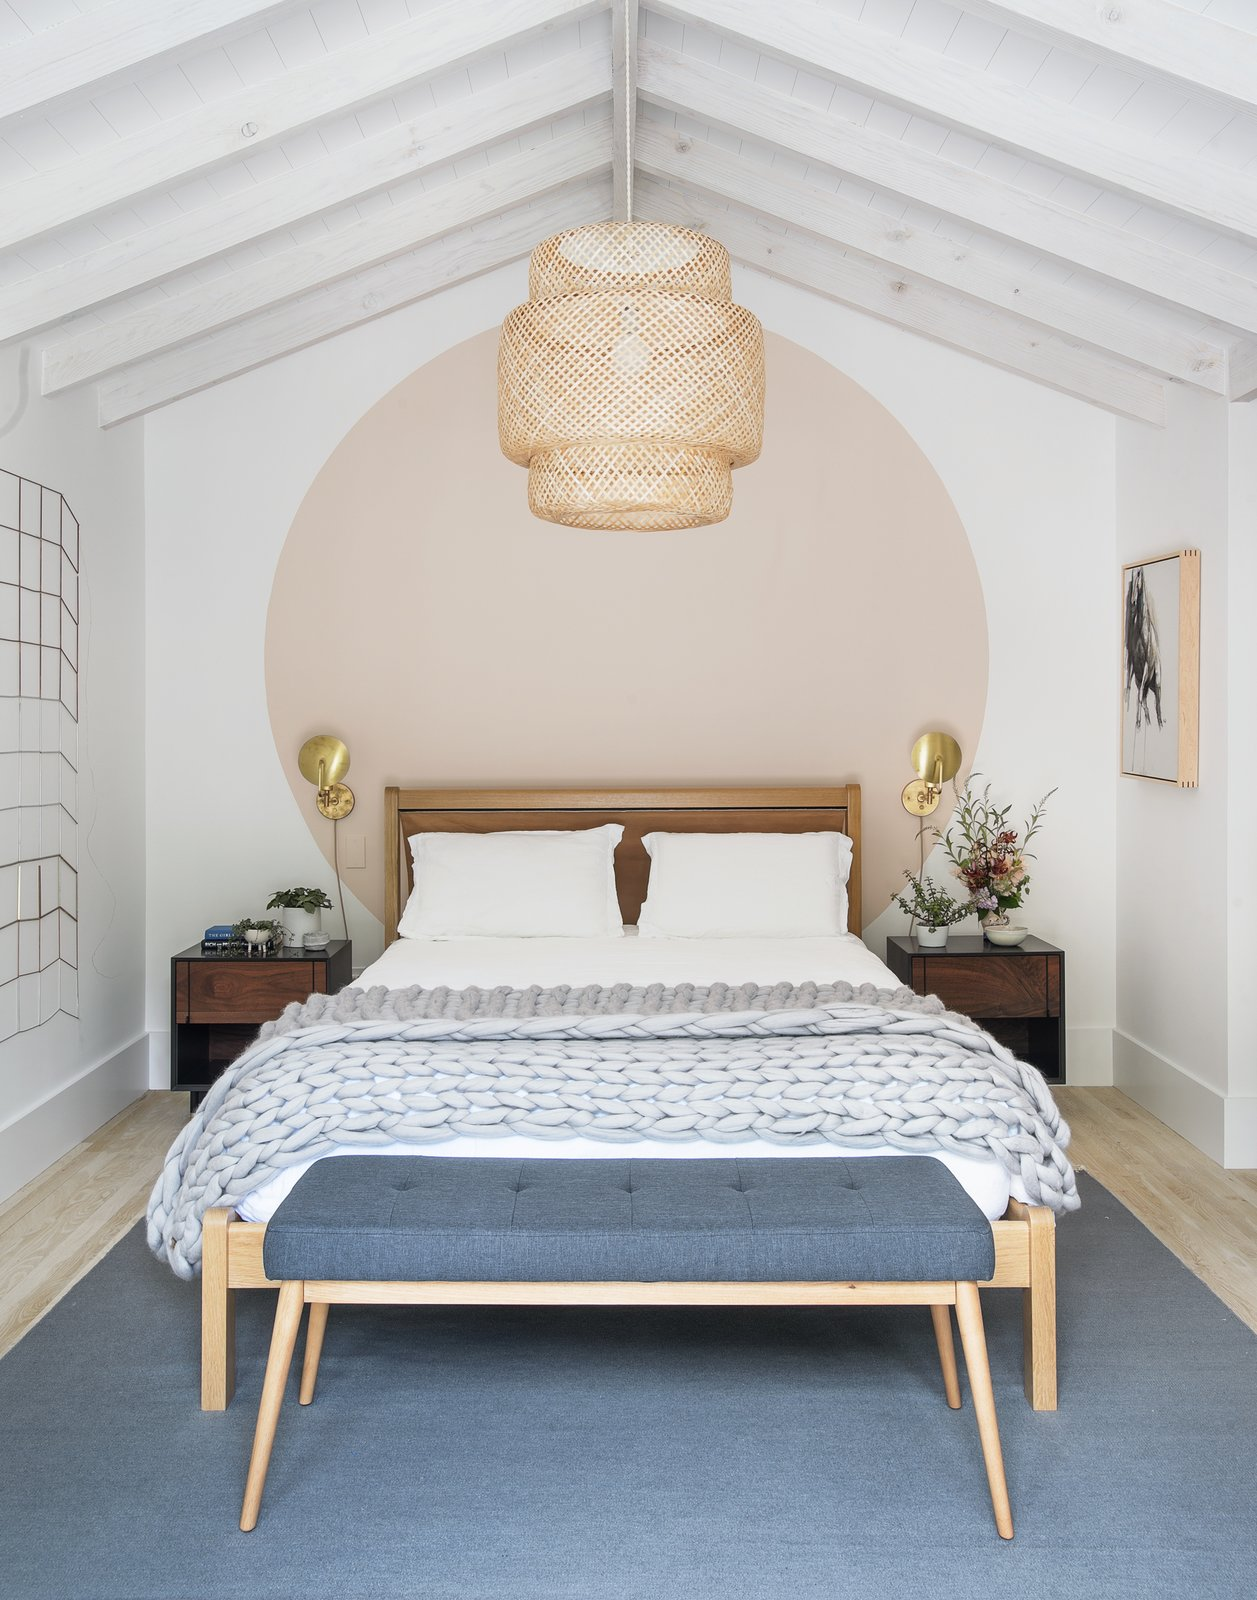 Bedroom, Lamps, Light Hardwood, Bed, Pendant, Wall, Bench, Night Stands, and Rug  Best Bedroom Wall Rug Light Hardwood Photos from A Hamptons Beach Retreat Gets a Scandinavian-Style Makeover